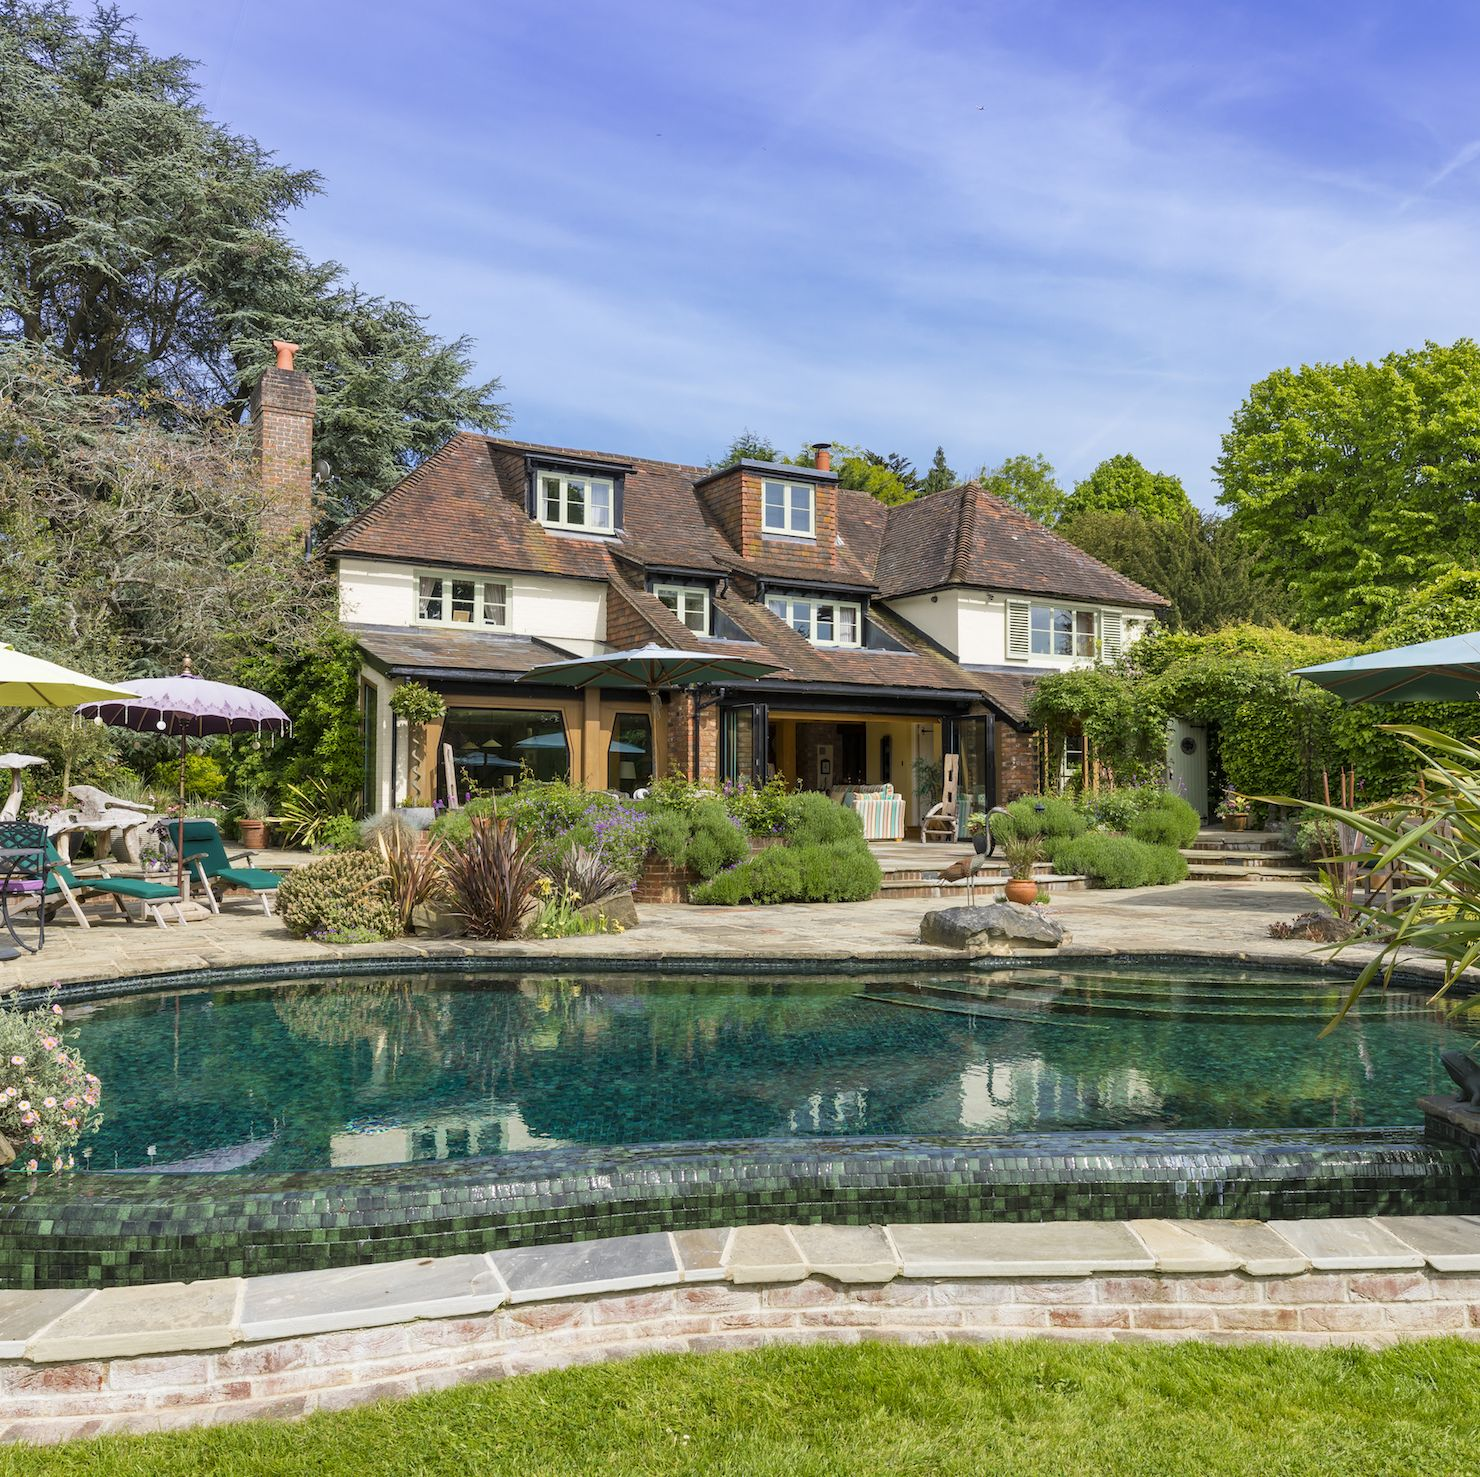 Breathtaking 17th century country house with swimming pool for sale in the Surrey Hills